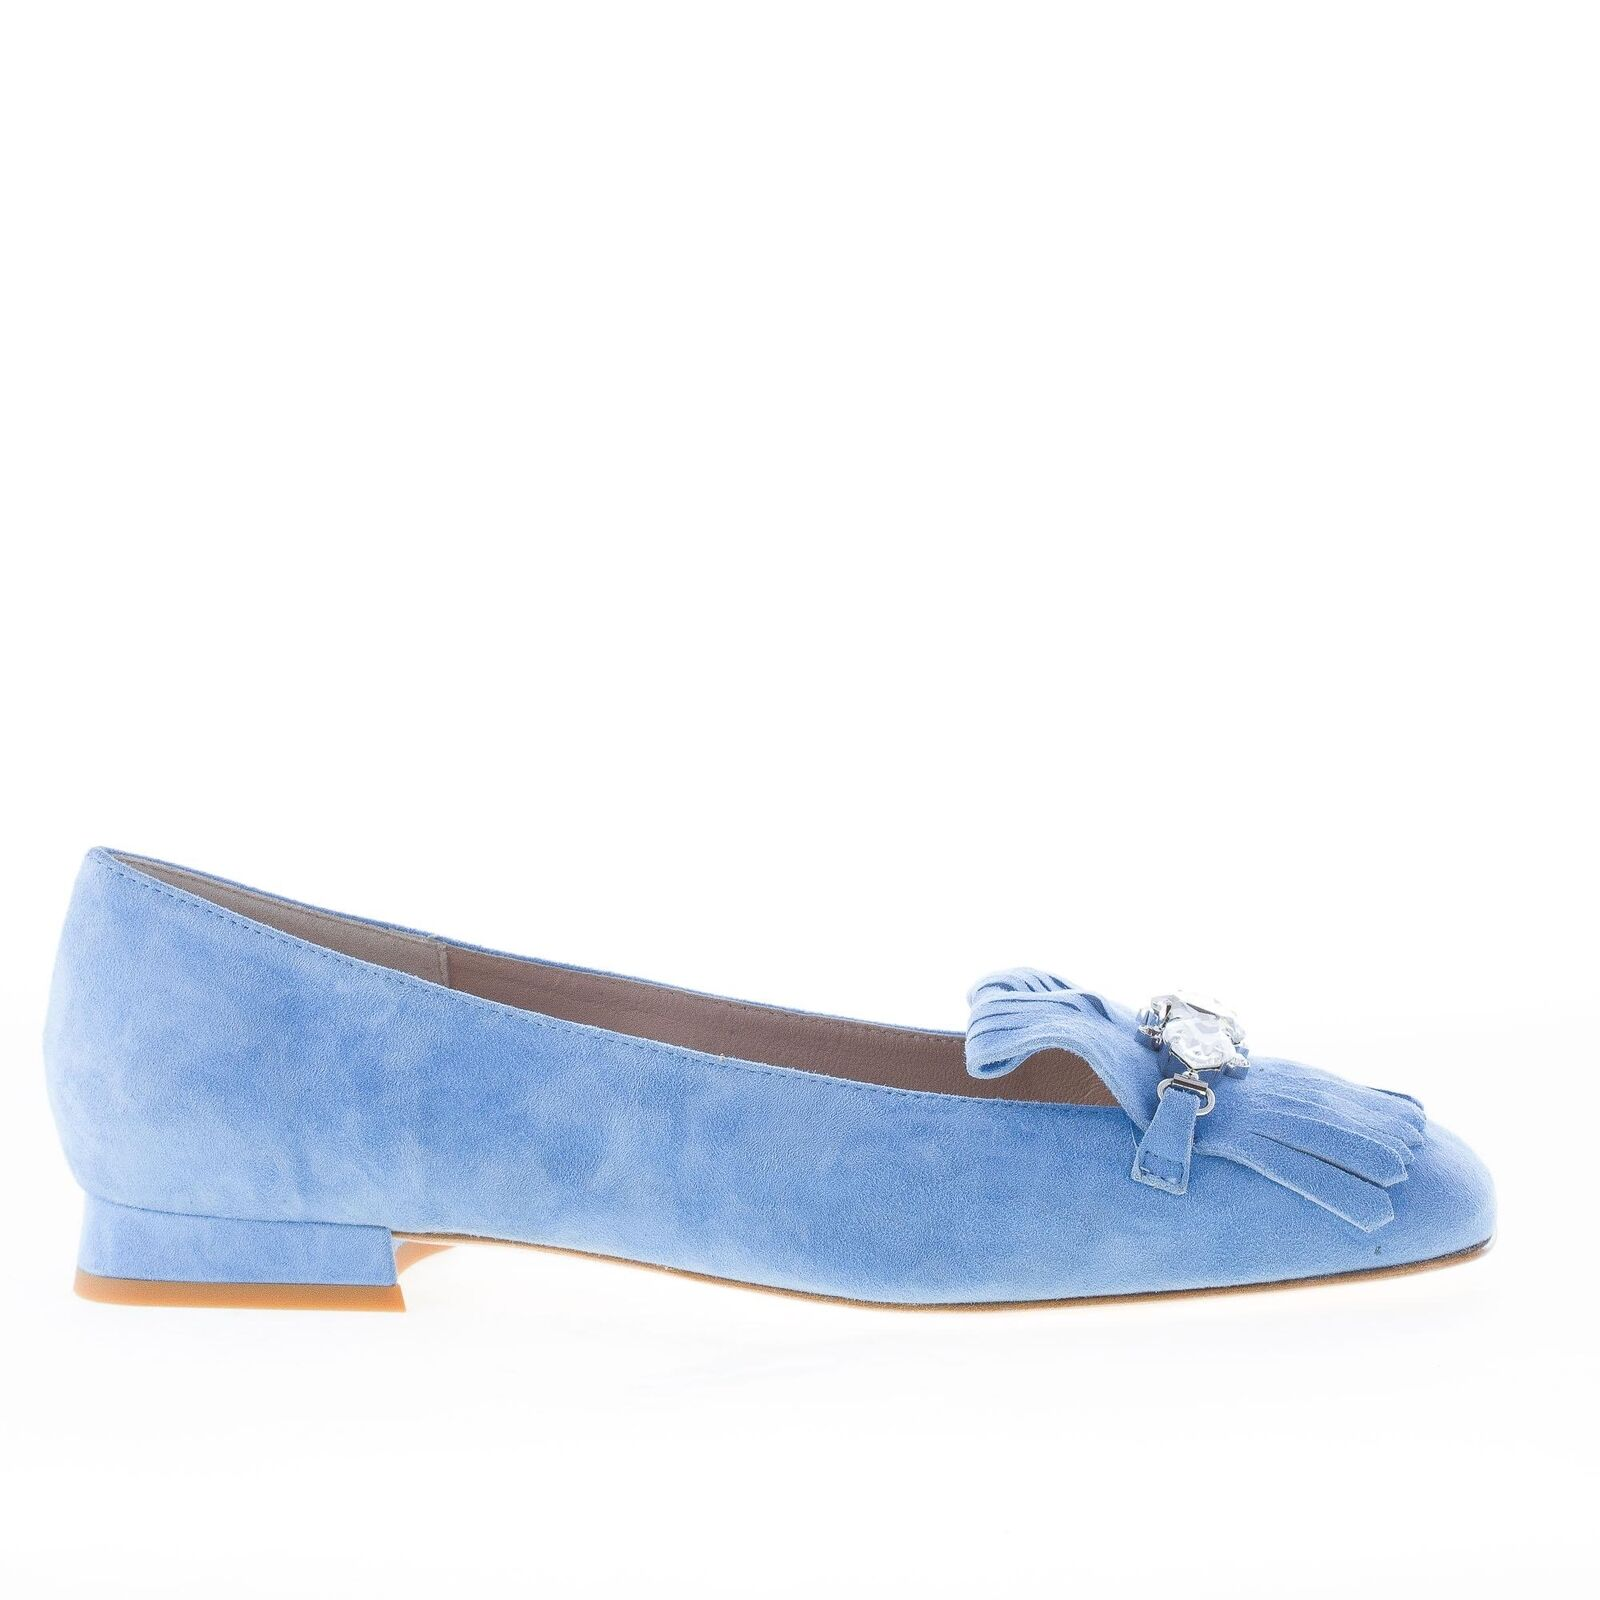 IL BORGO FIRENZE damen schuhe damen schuhe Blau sky suede loafer fringe and jewel